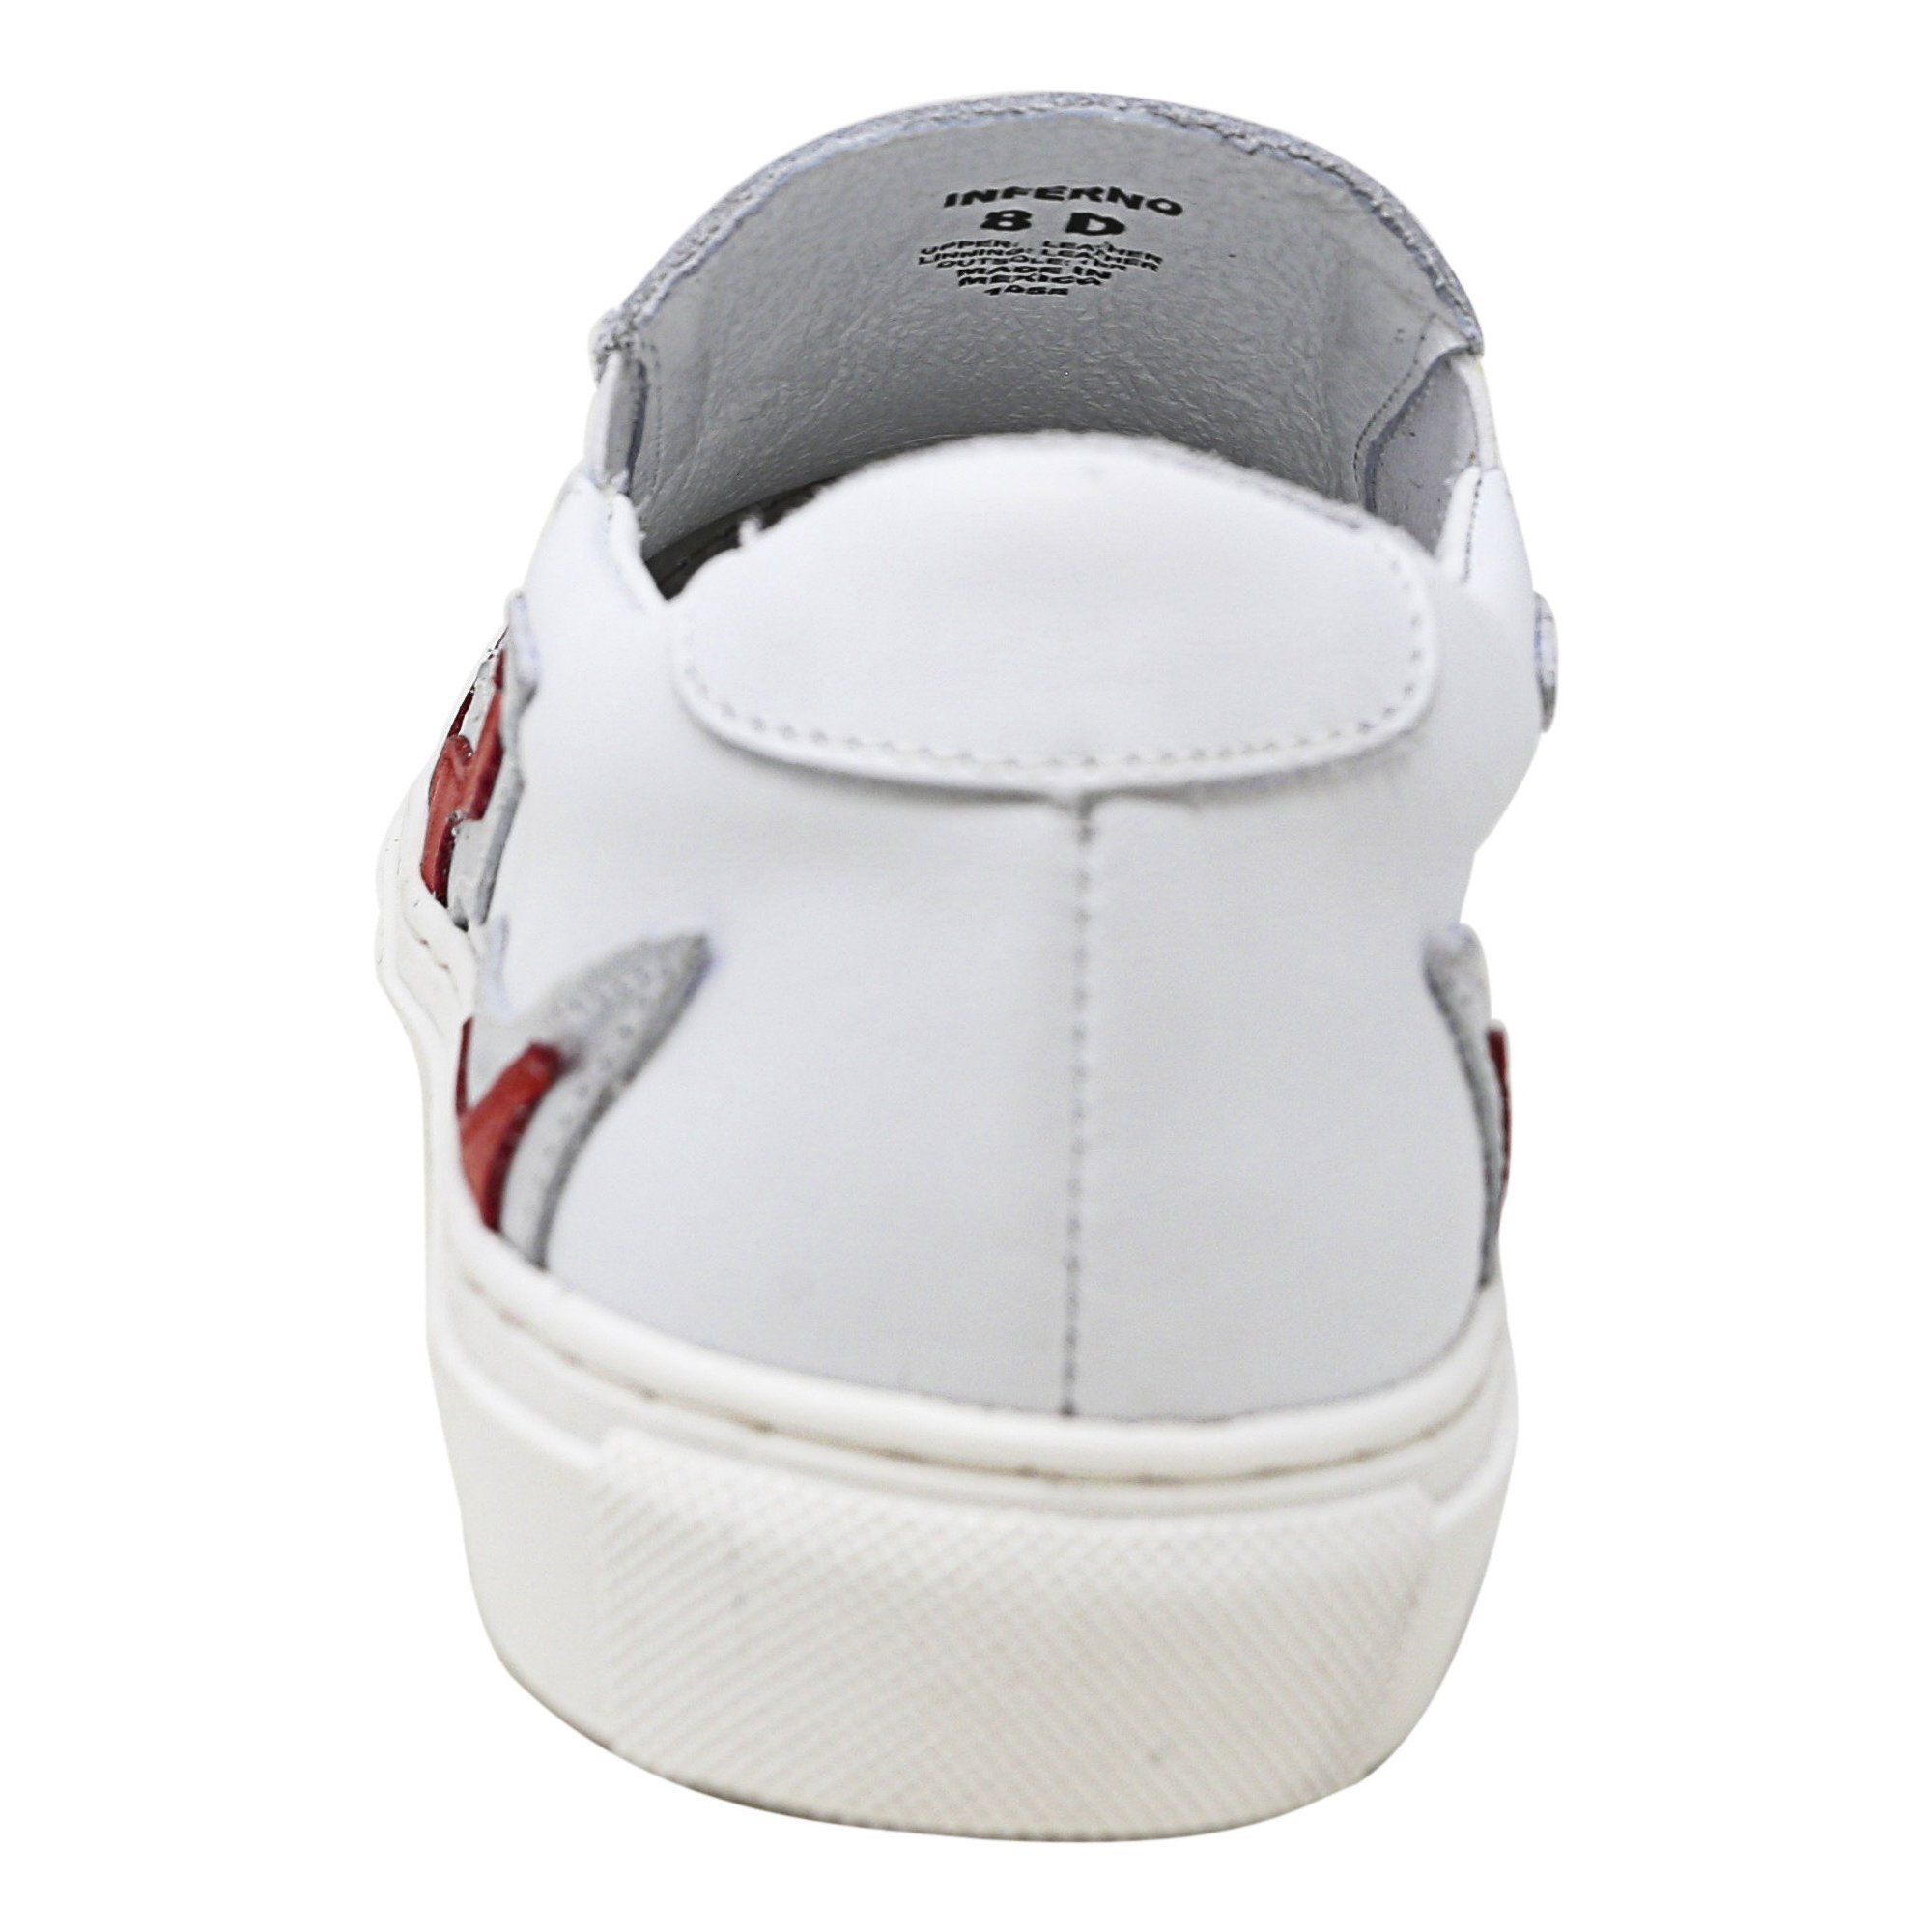 262a2b67a96cc Steve Madden Men's Inferno White Ankle-High Leather Slip-On Shoes - 8M |  Walmart Canada